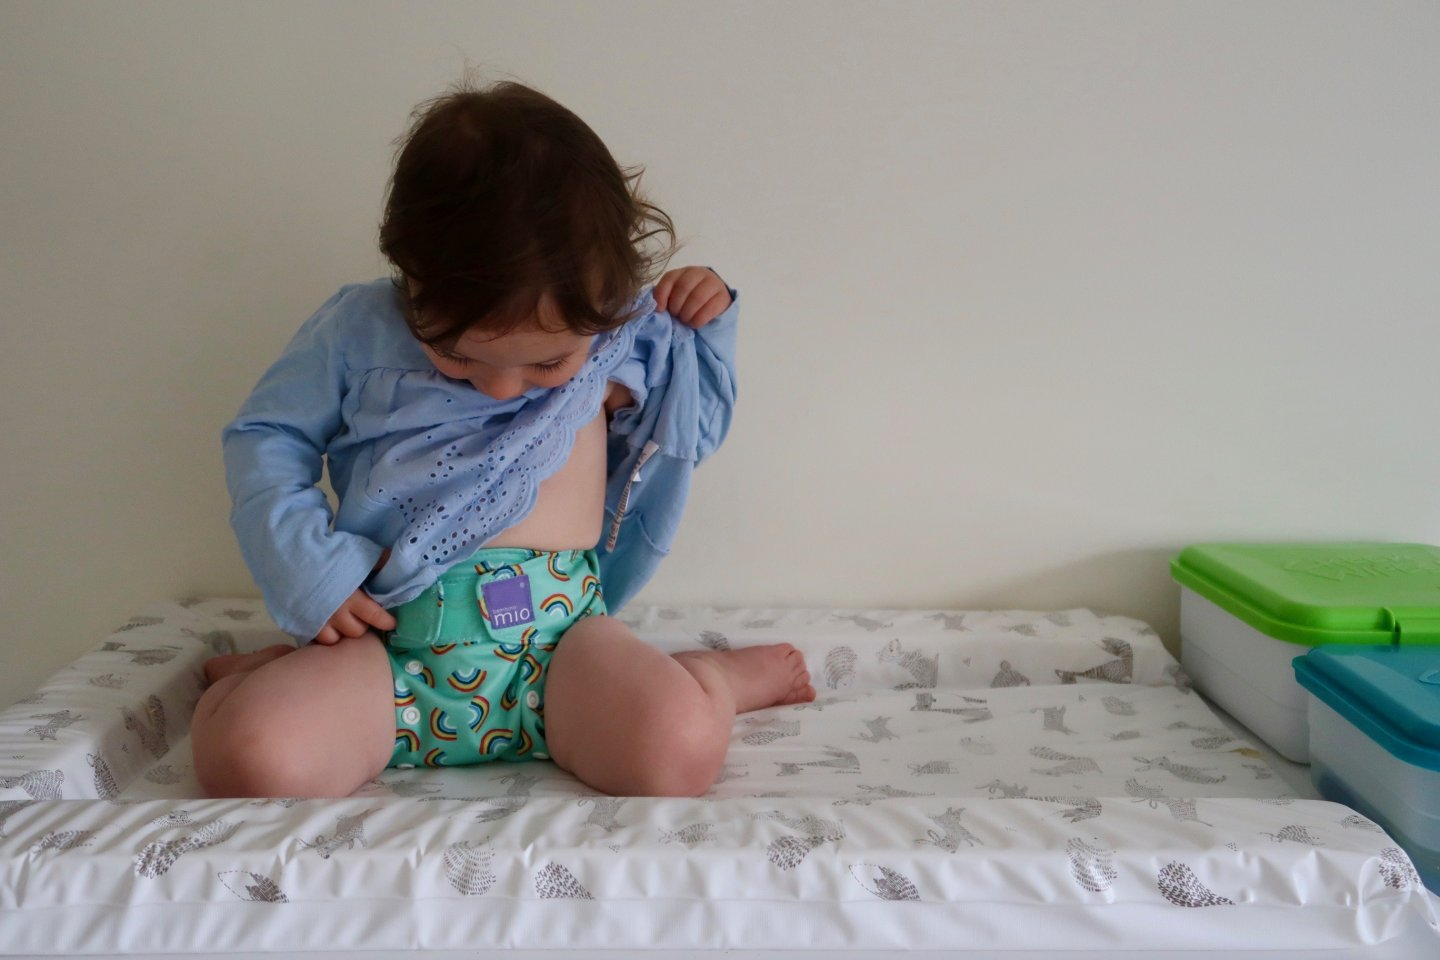 B sits on top of the changing mat, lifting up her top to look at her colourful reusable nappy. The Cheeky wipes boxes are on the changing table, next to her.